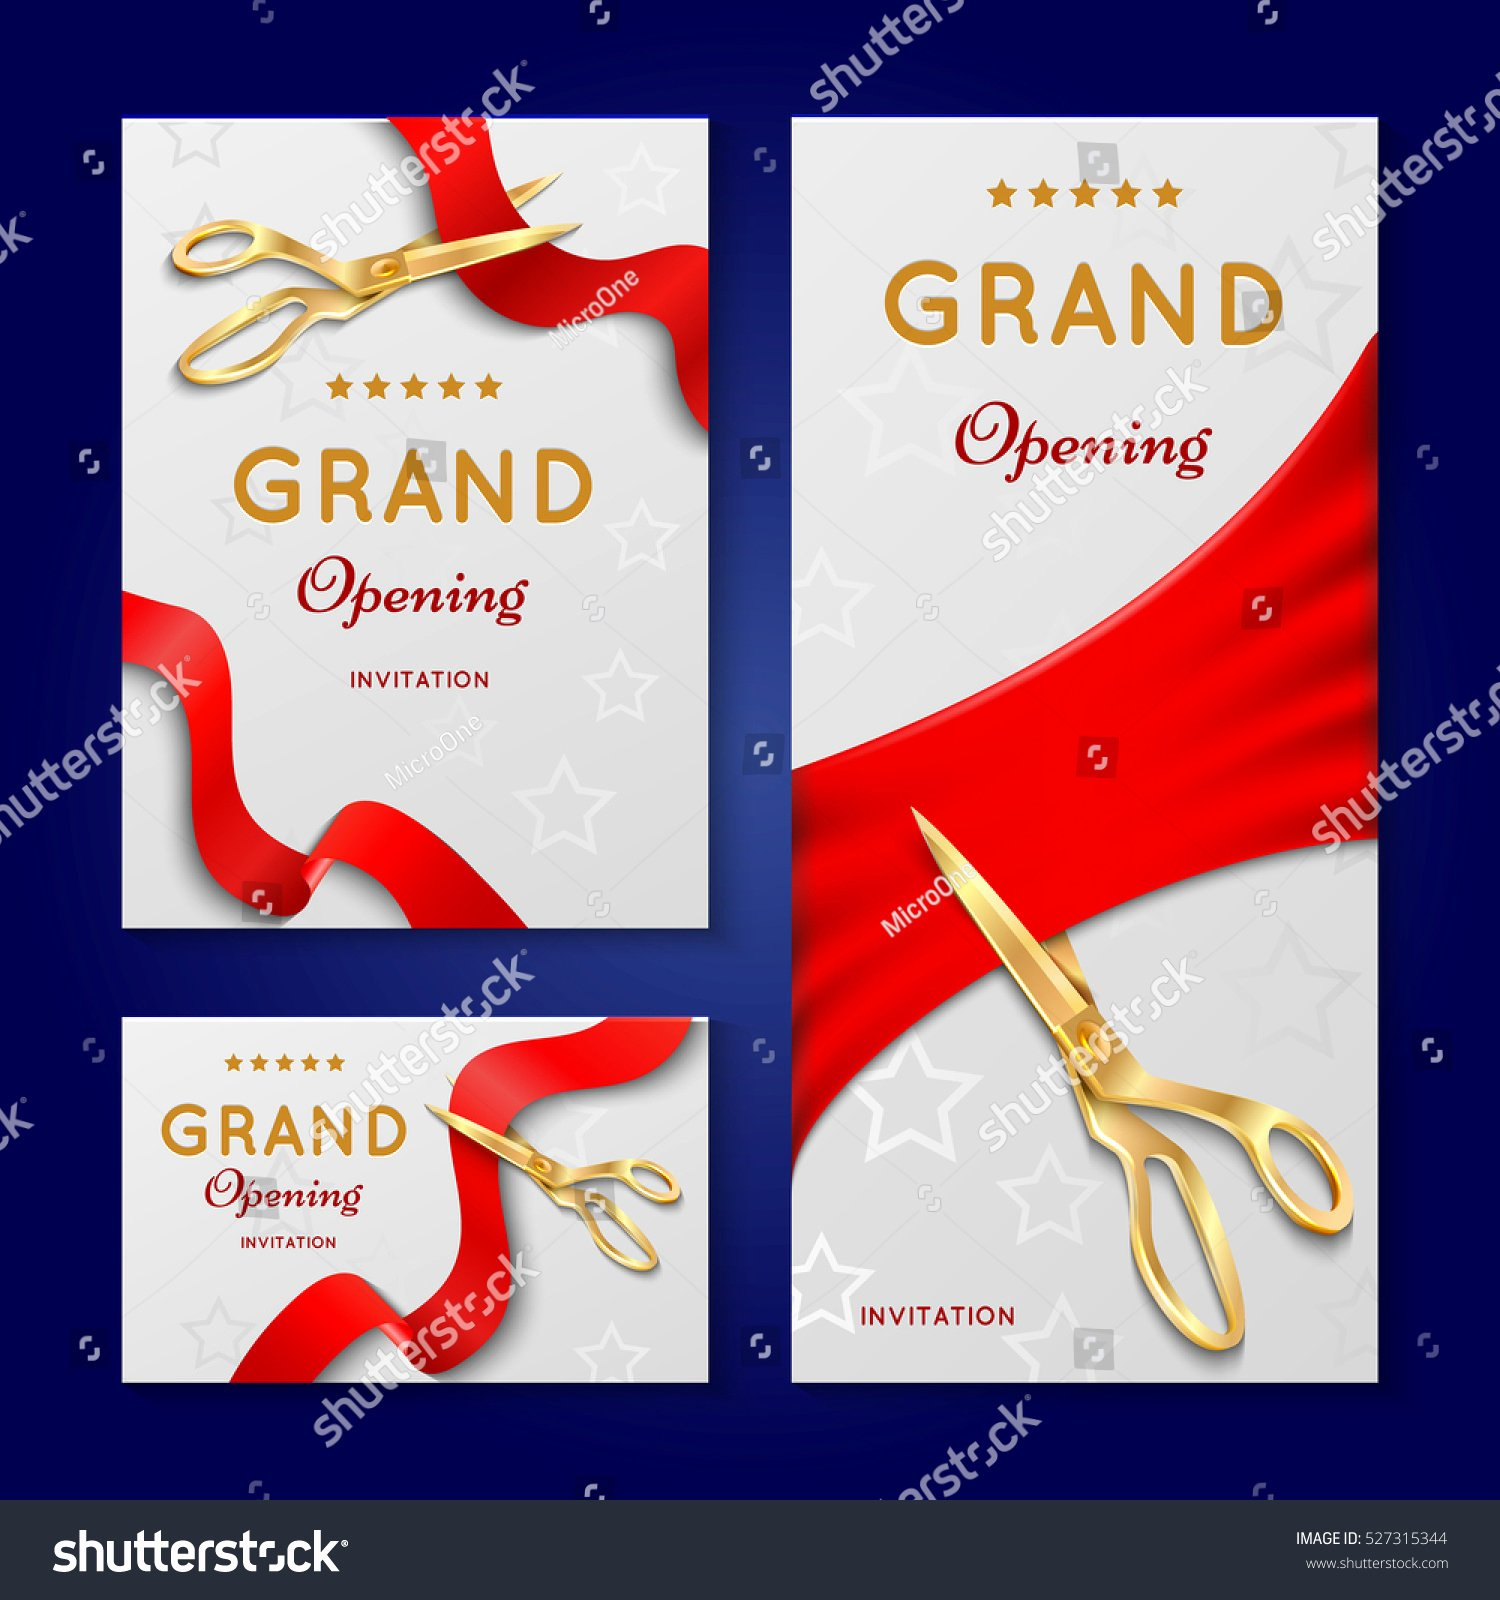 Ribbon Cutting Ceremony Invitation Template Inspirational Ribbon Cutting Scissors Grand Opening Ceremony Stock